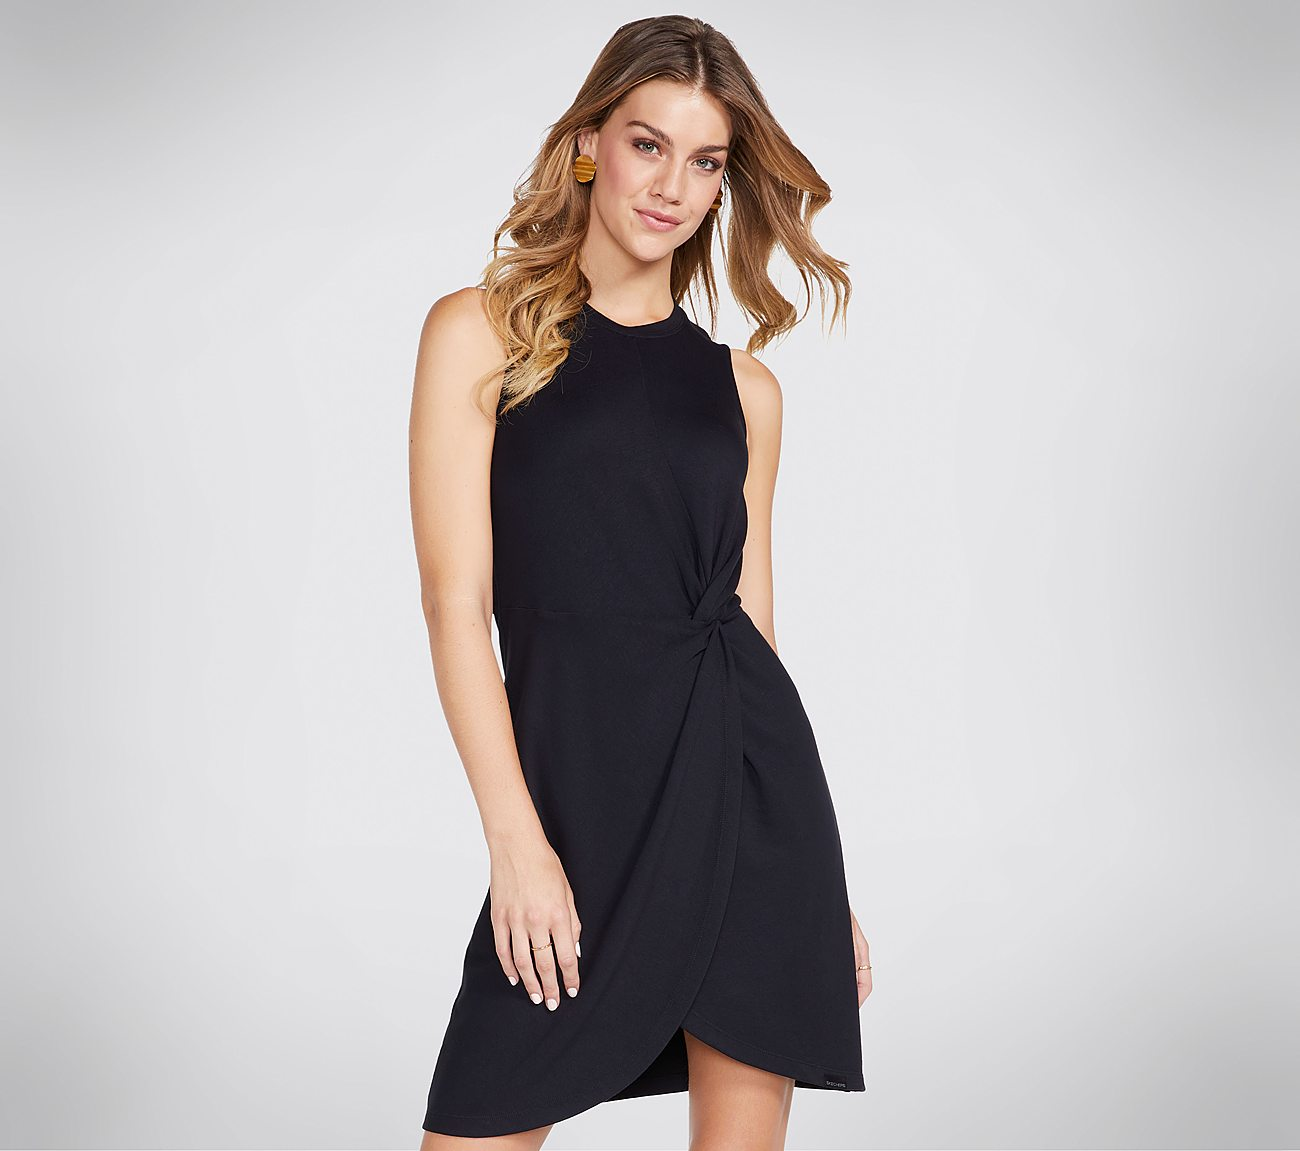 Skechers Apparel Wellness Dress